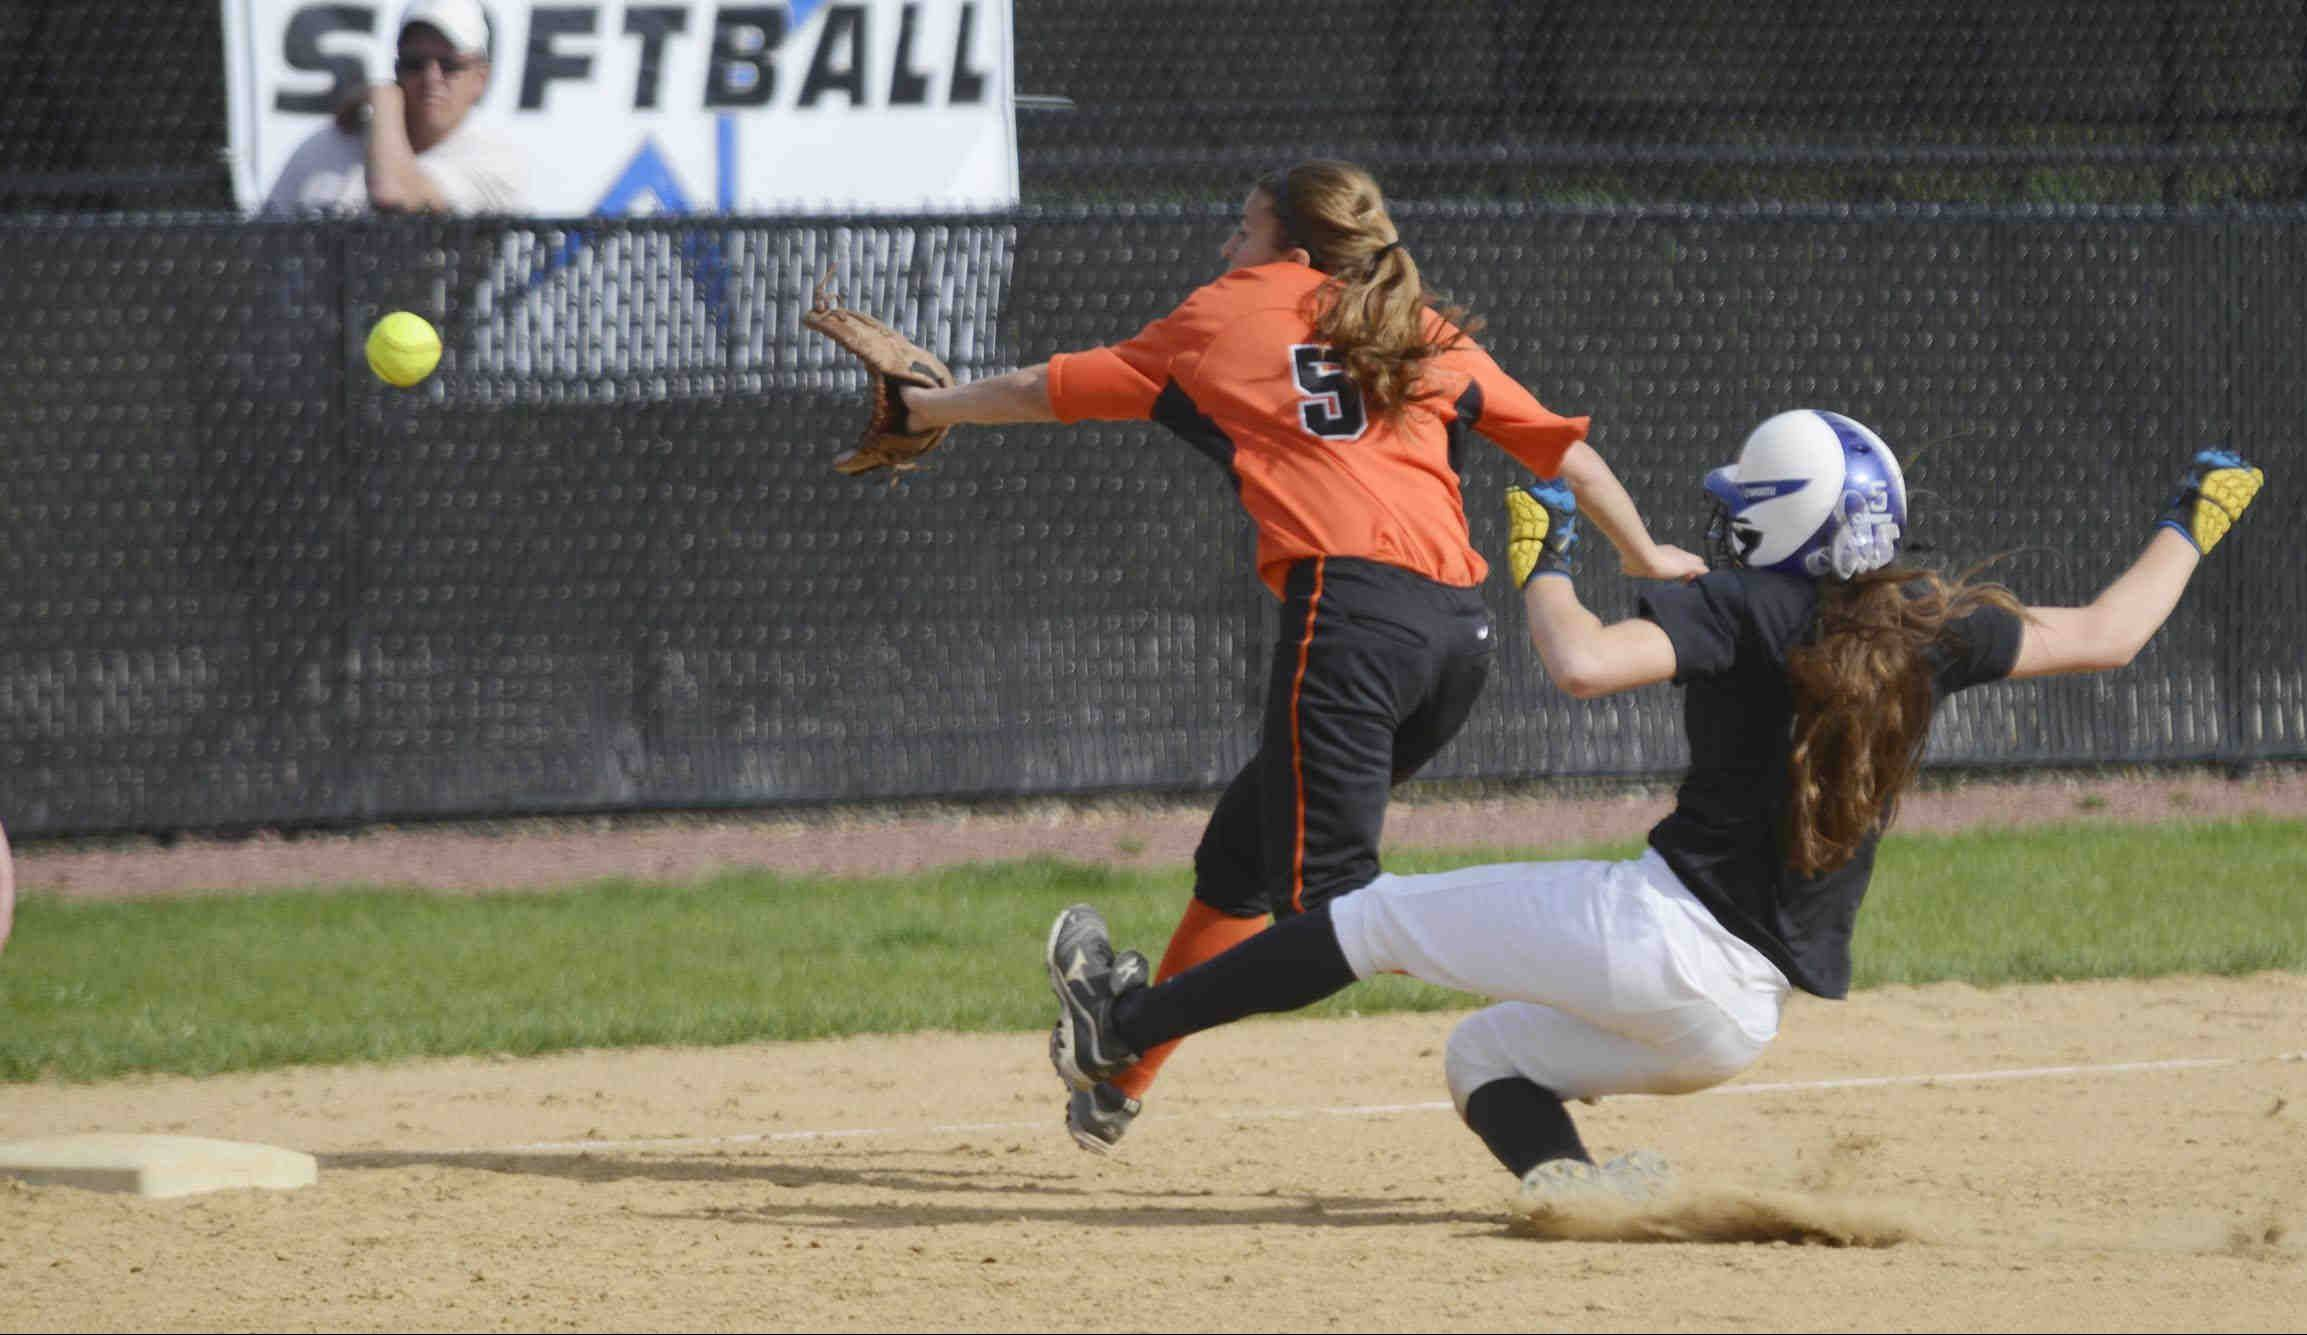 St. Charles North�s Sabrina Rabin steals third base after stealing second in the first inning as St. Charles East�s Alexis Perez reaches for the throw. Rabin stole four bases in the North Stars� 10-0 victory.